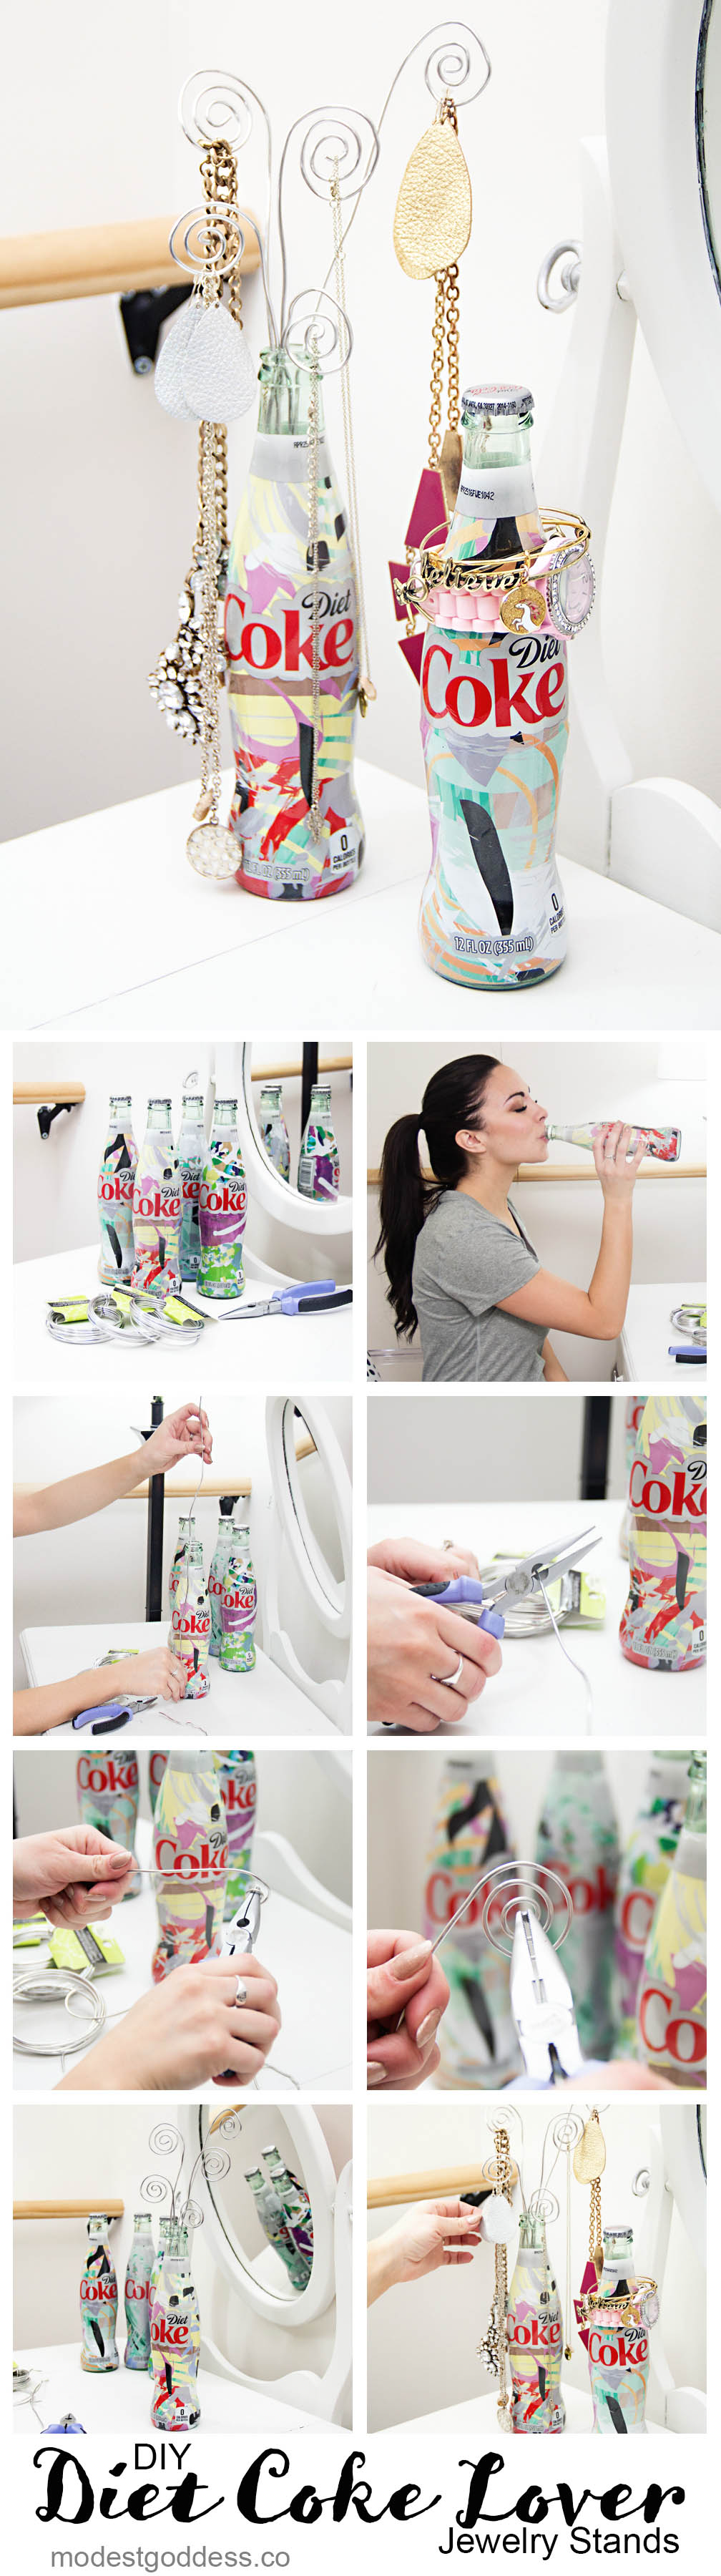 "How to Make a Diet Coke Lovers Jewelry Stand – a Diet Coke ""It's Mine"" DIY"